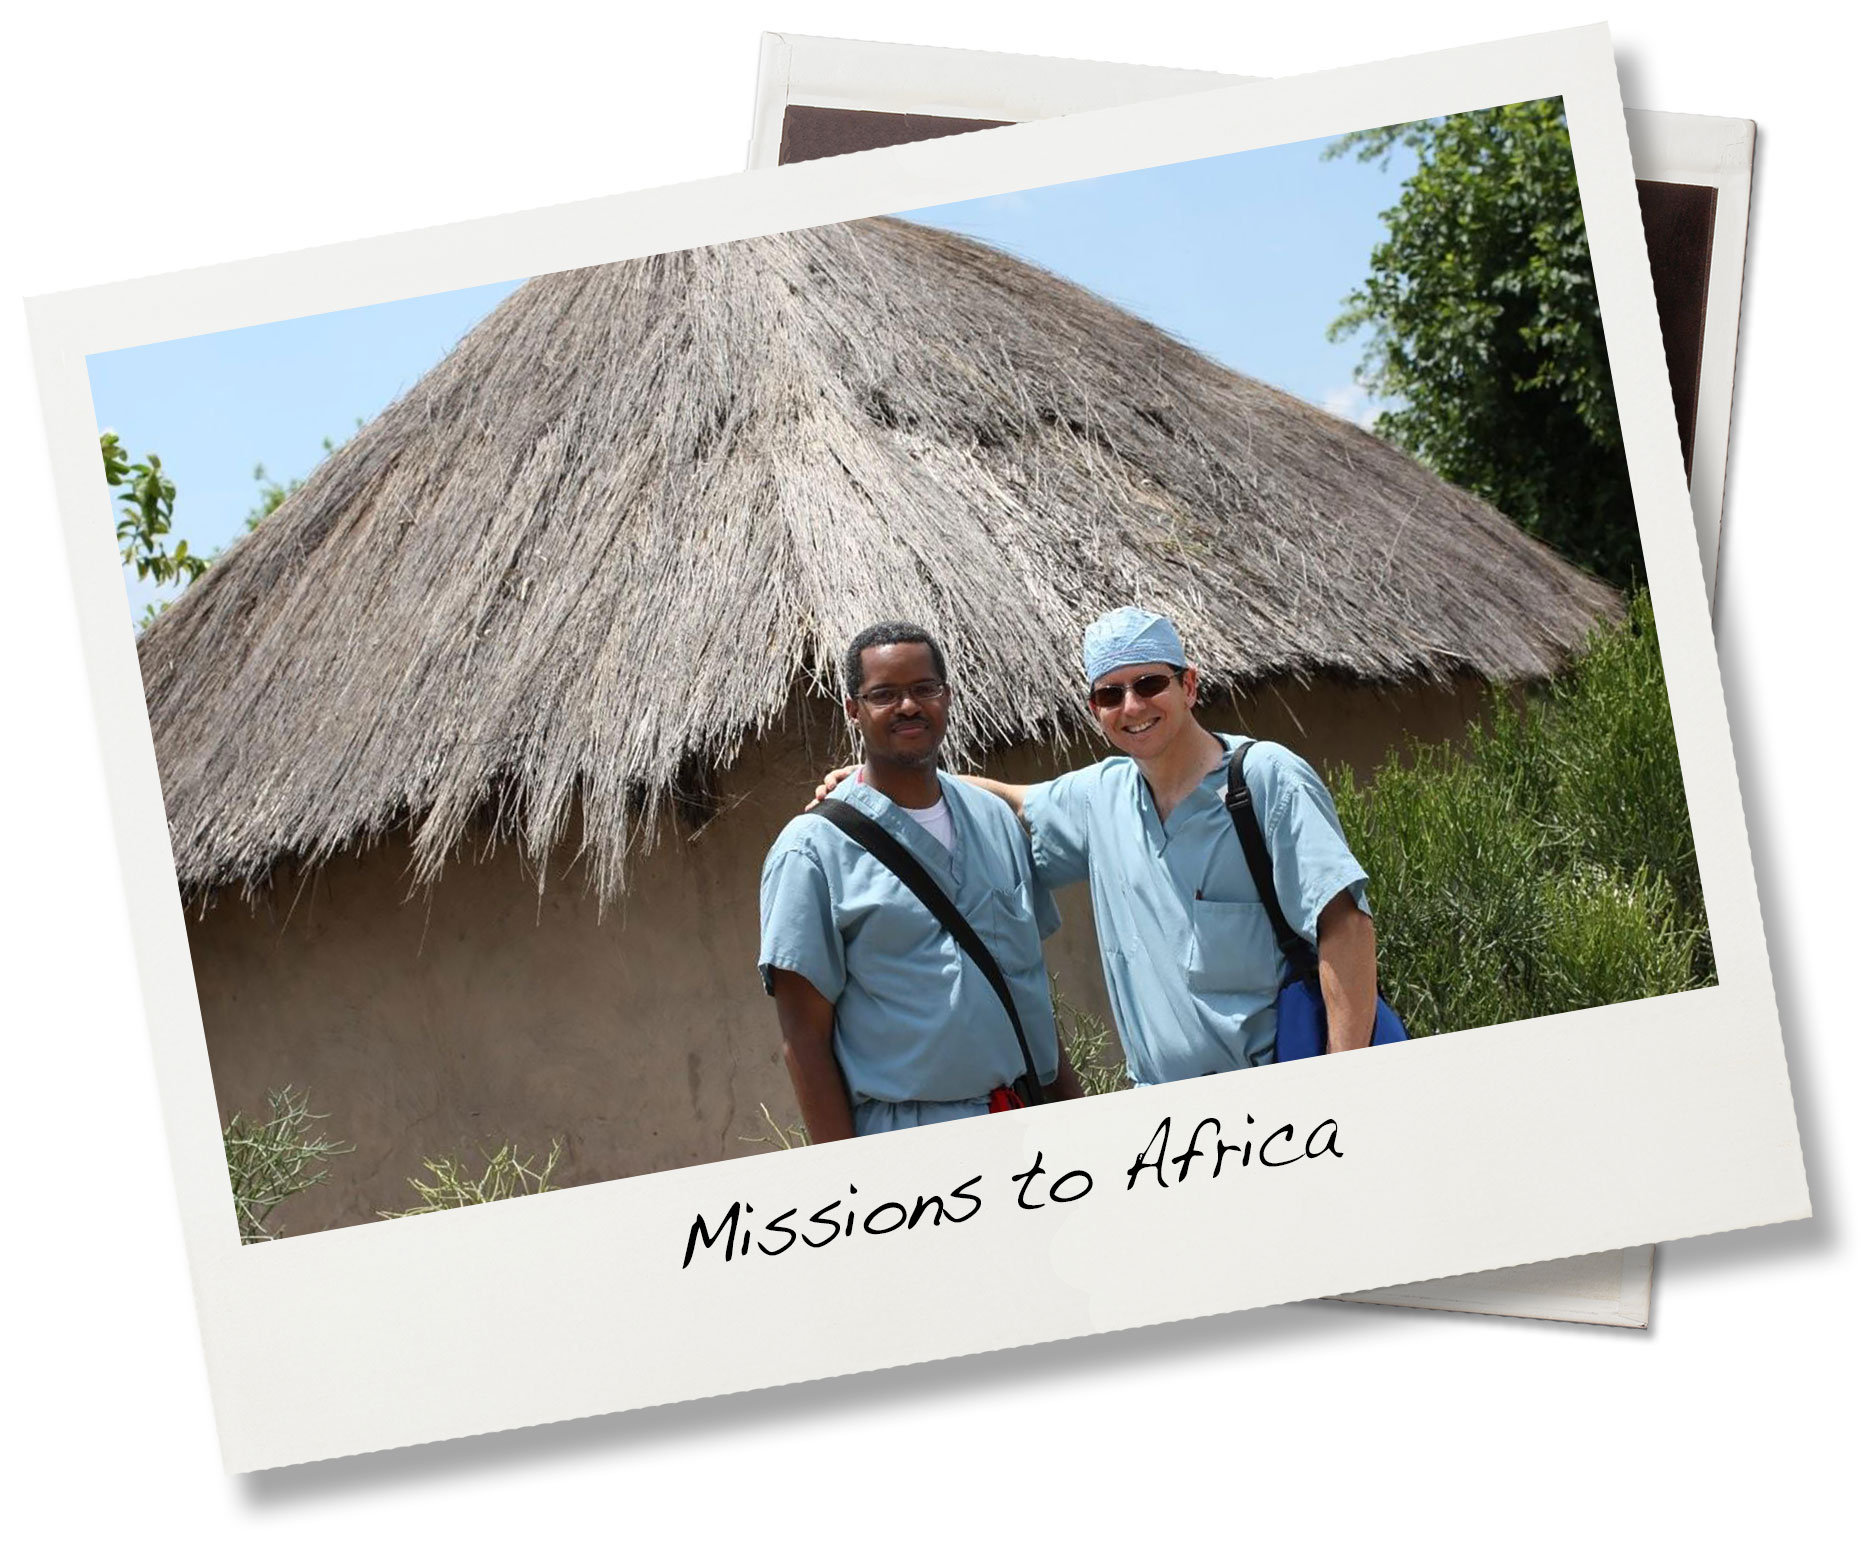 Africa Mission 2010